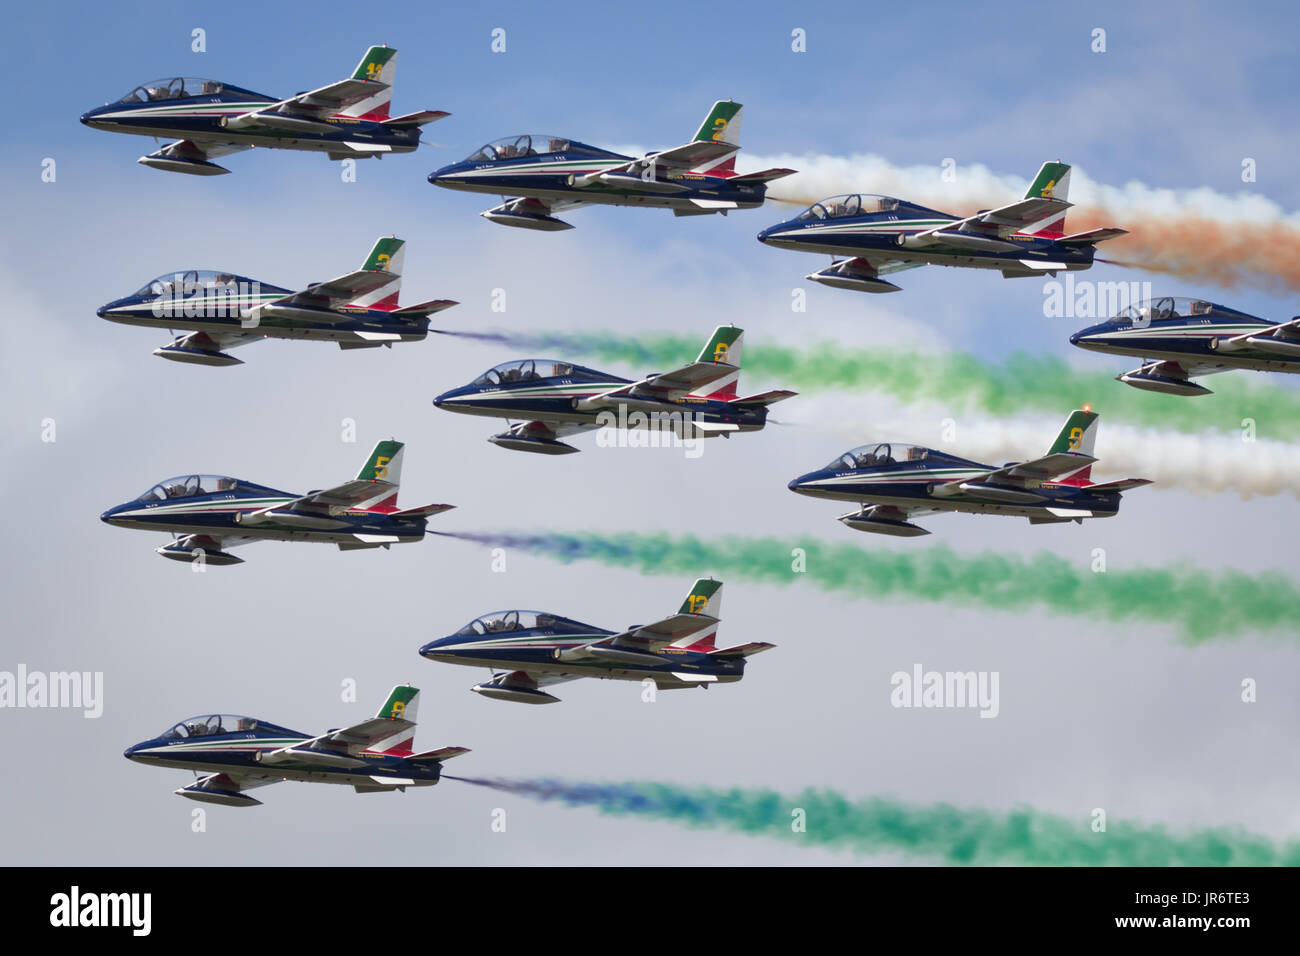 Fairford, Gloucestershire, UK - July 10th, 2016: The Italian Air Force Frecce Tricolori Display Team perform at Stock Photo